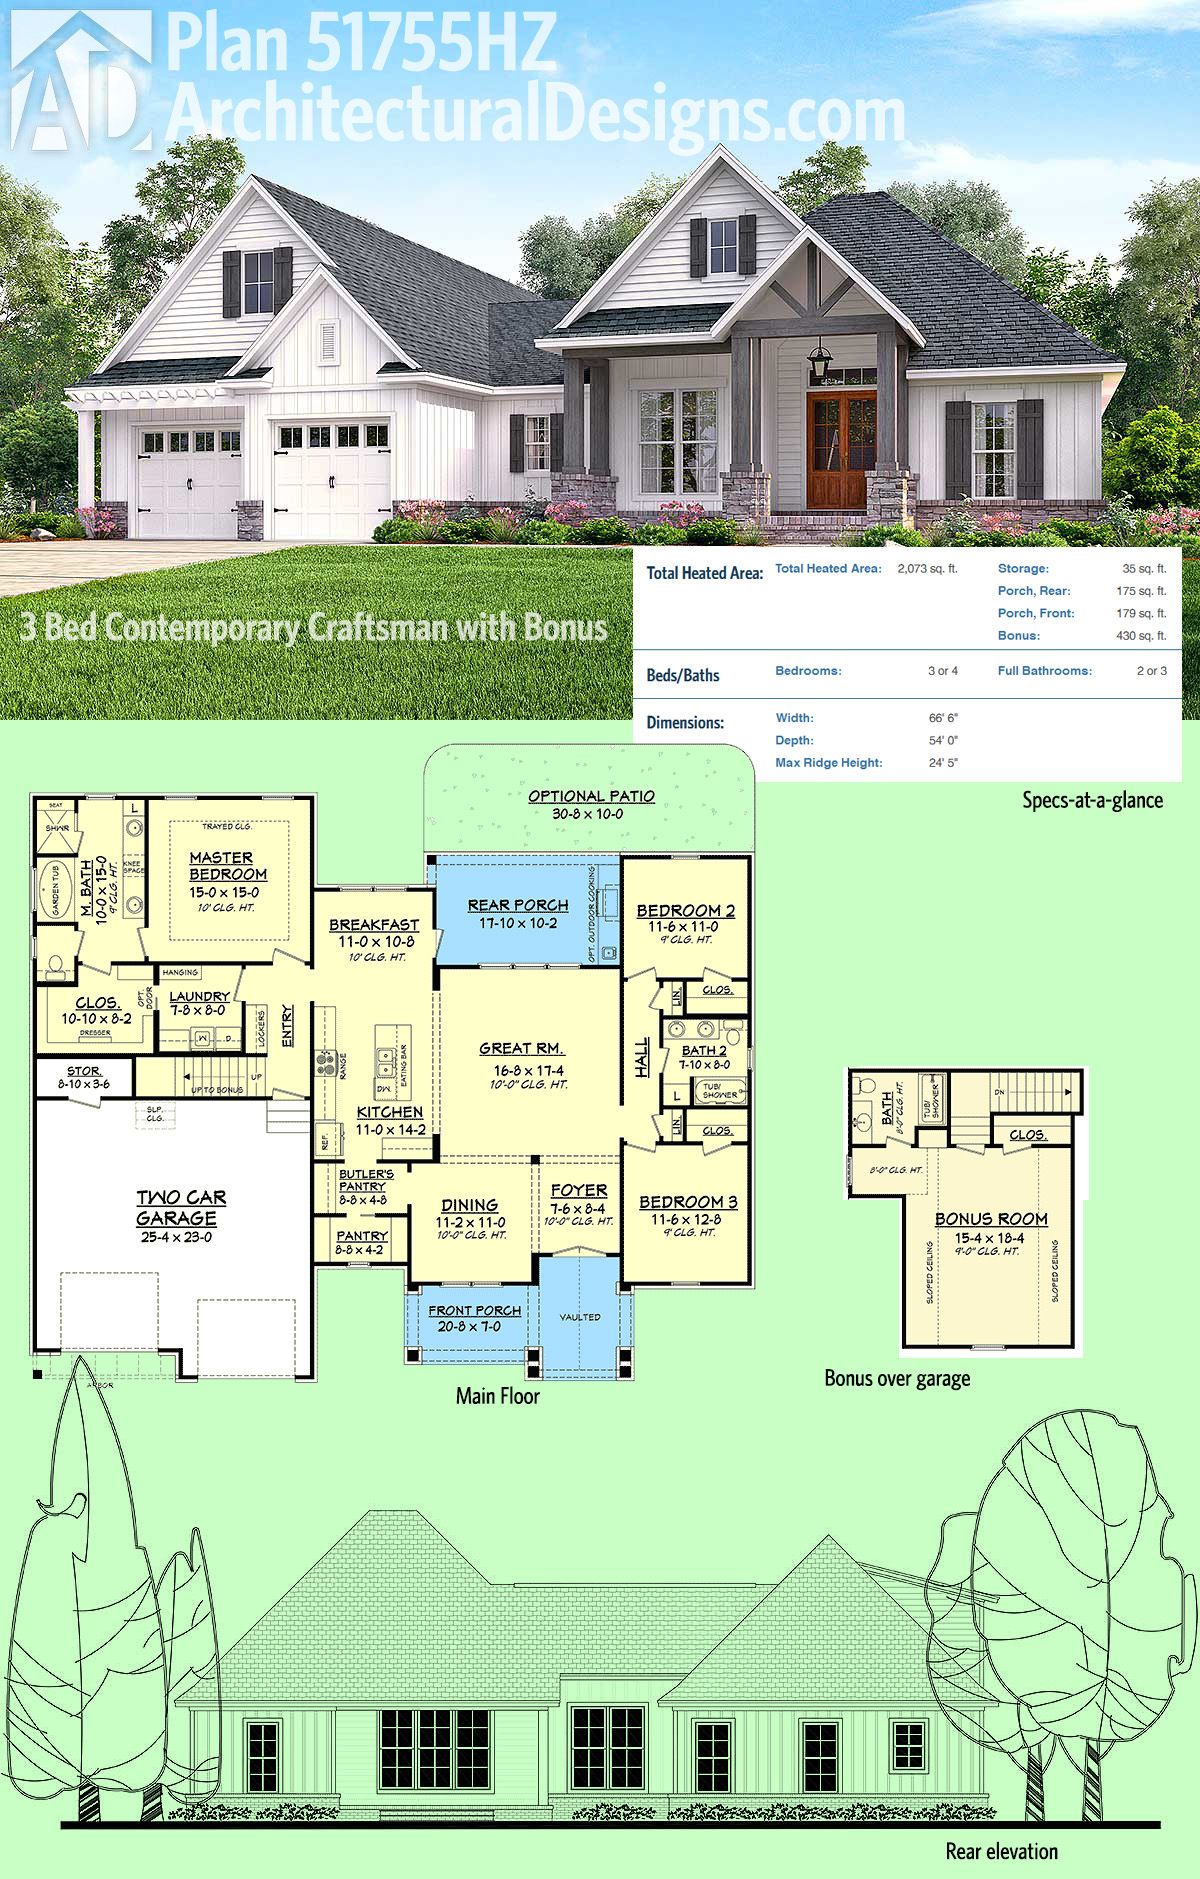 e208e12ff8165dcc9b336e2104f51e1a Top Result 52 Elegant House Plans with Finished Basement